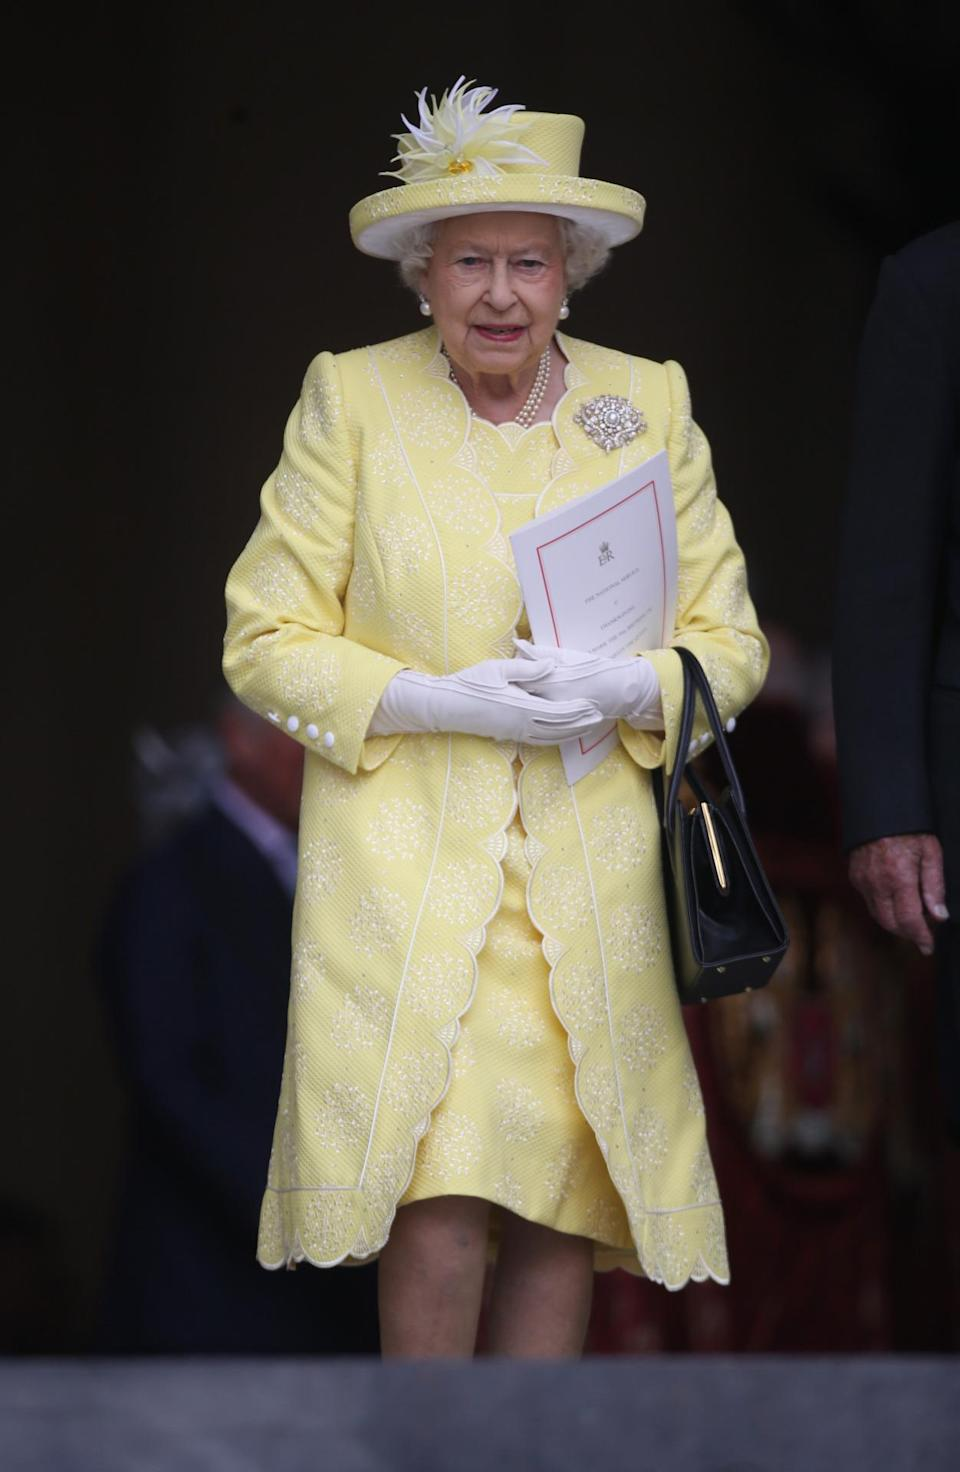 <p>The queen looked cheery in a lemon yellow dress, coat, and hat combo, with an eye-catching brooch and her traditional white gloves. <i>(Photo: PA Images)</i><br></p>